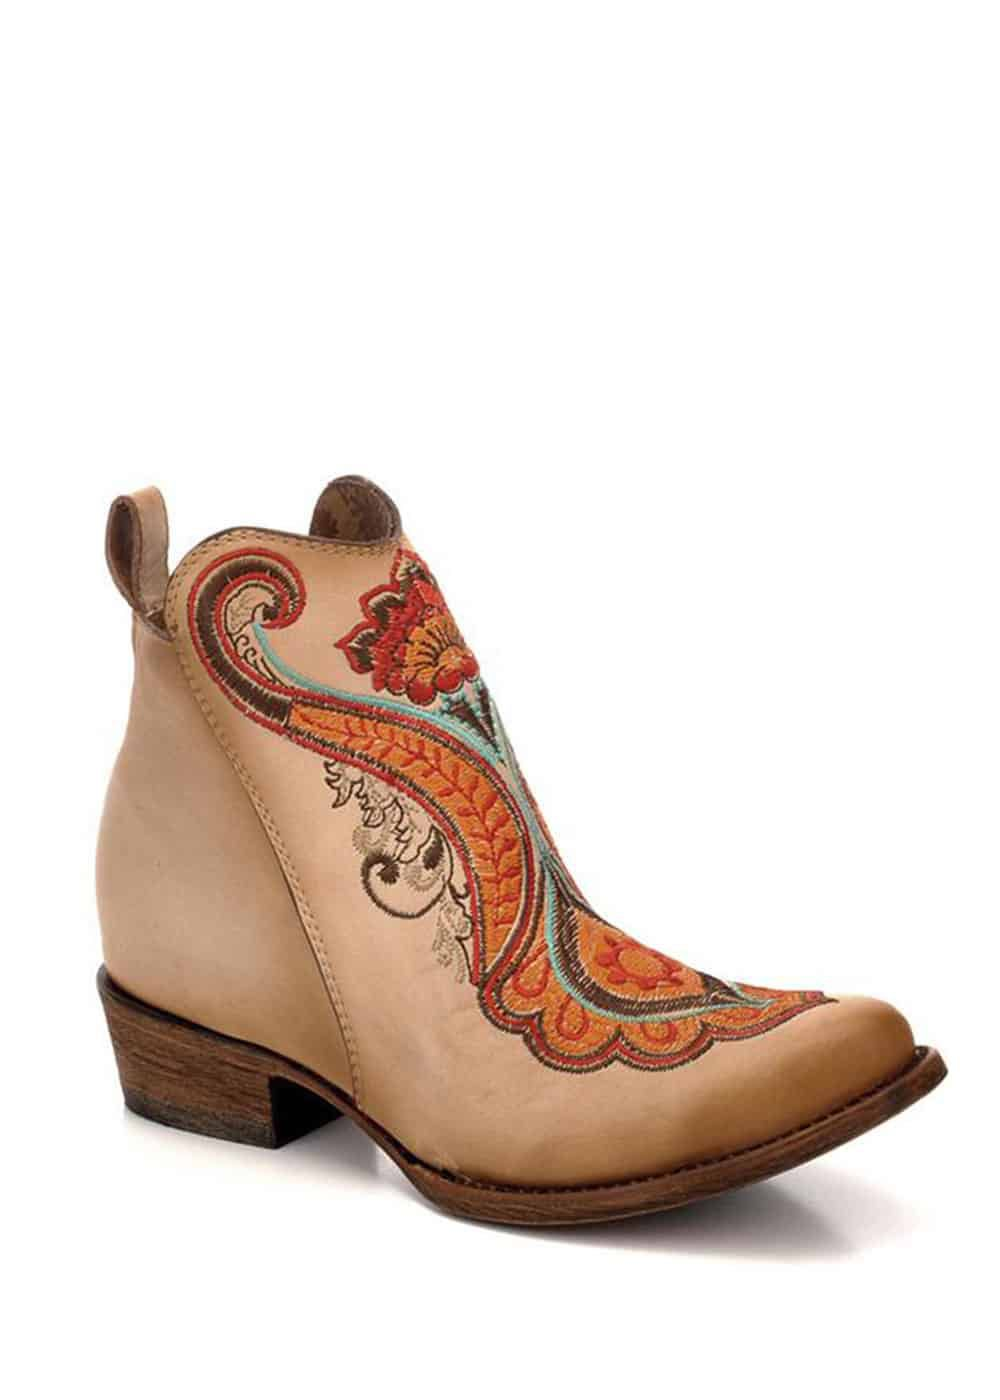 Corral's new styles cowgirl magazine